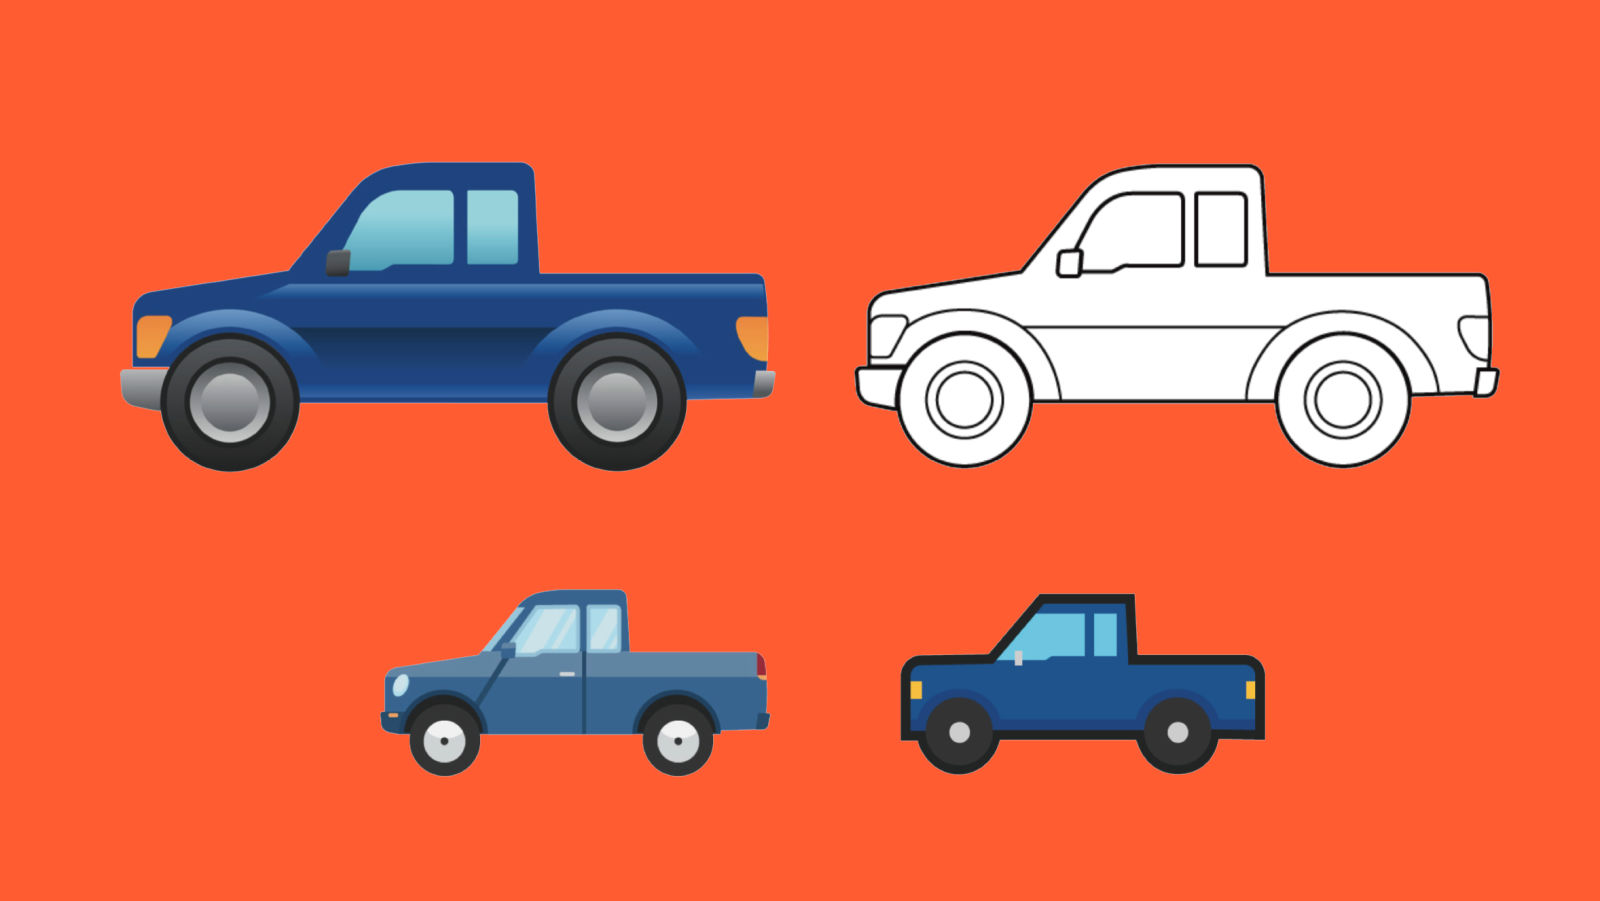 World Emoji Day Ford pickup truck emoji